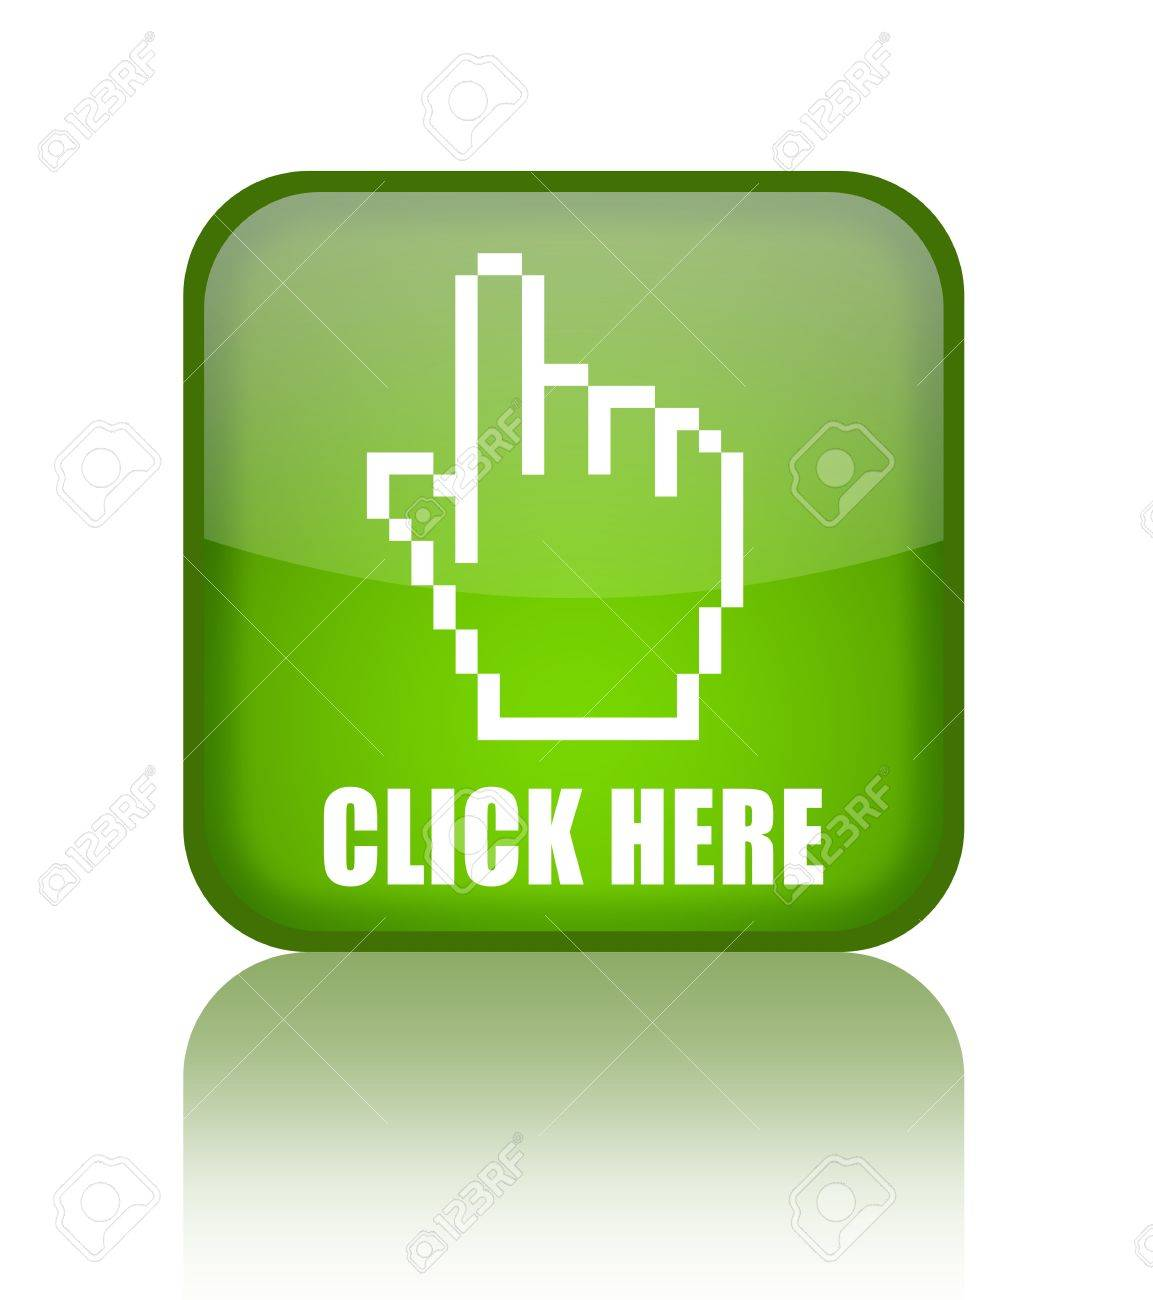 Click here green glass button Stock Photo - 8885319